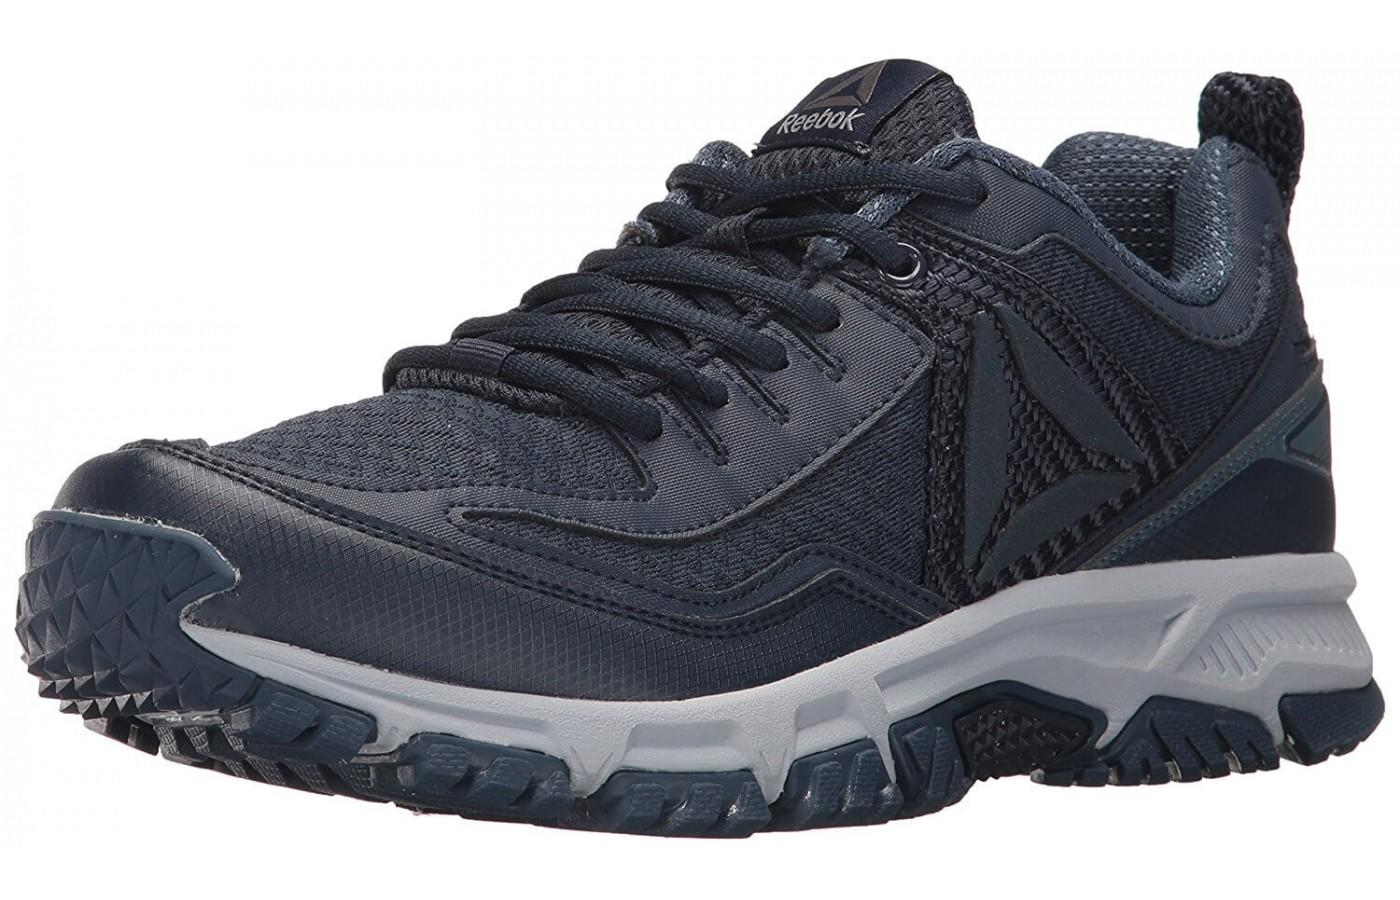 Reebok Ridgerider Trail 2.0 is a trail shoe with prominent outsole lugs